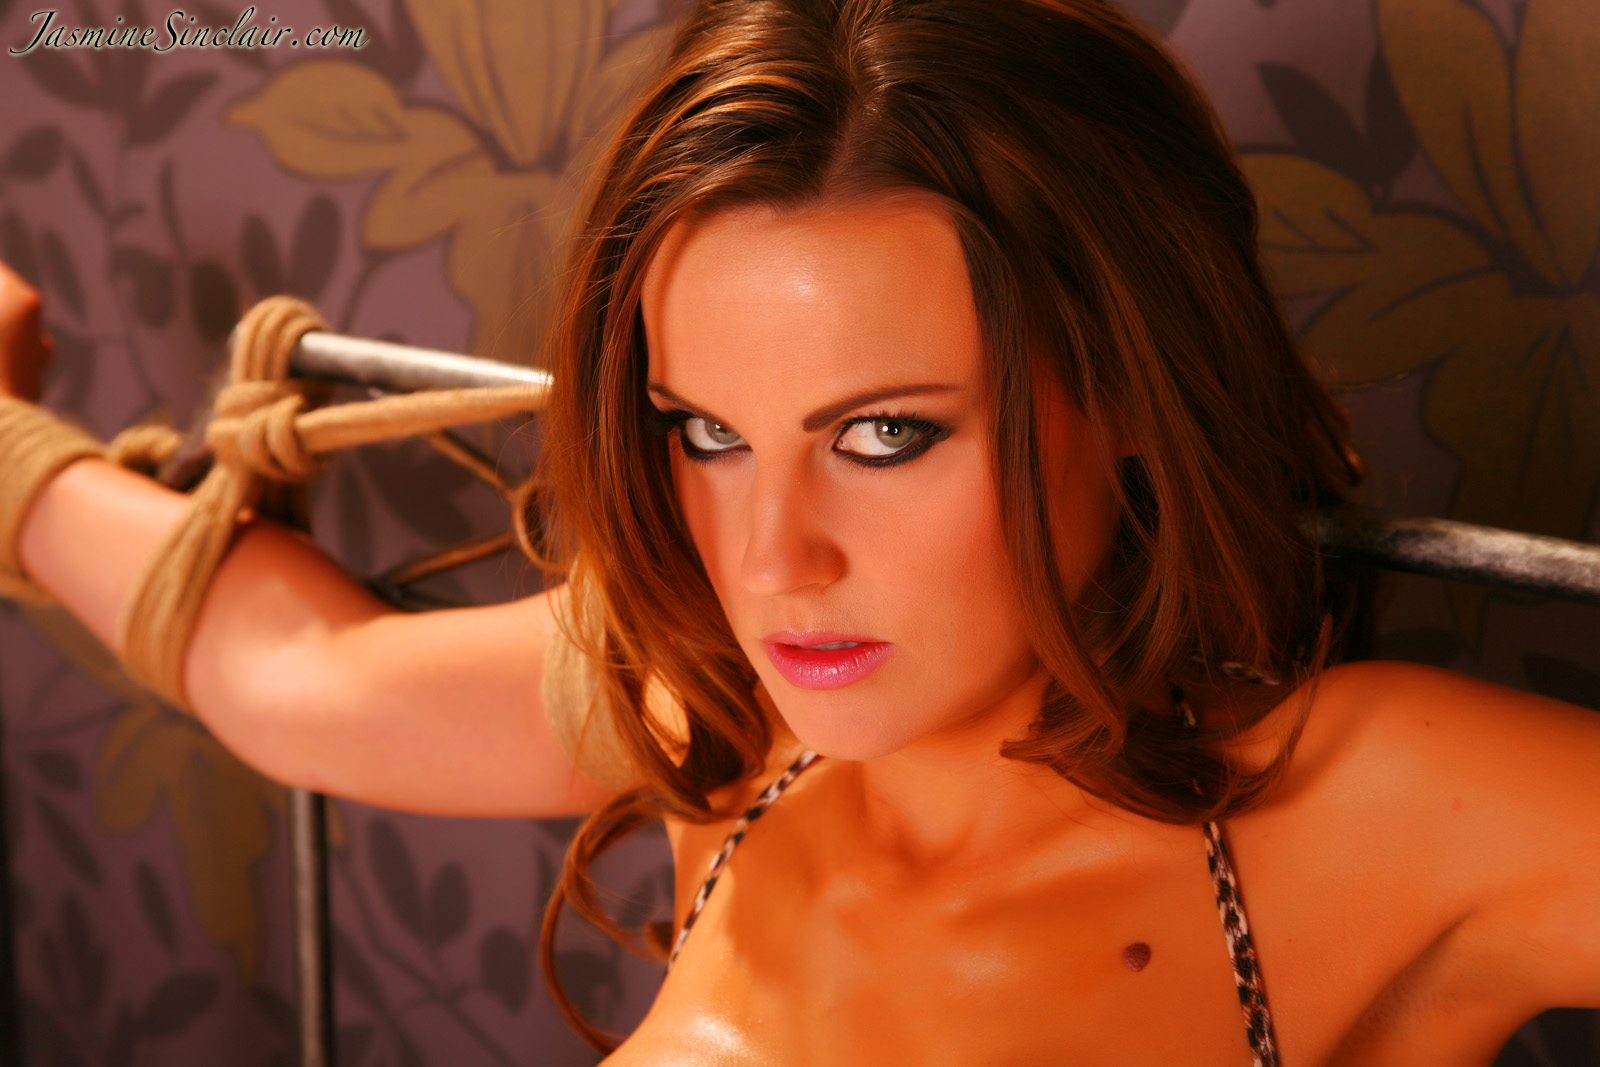 Beautiful Jasmine Sinclair enjoys every second of her bondage submission